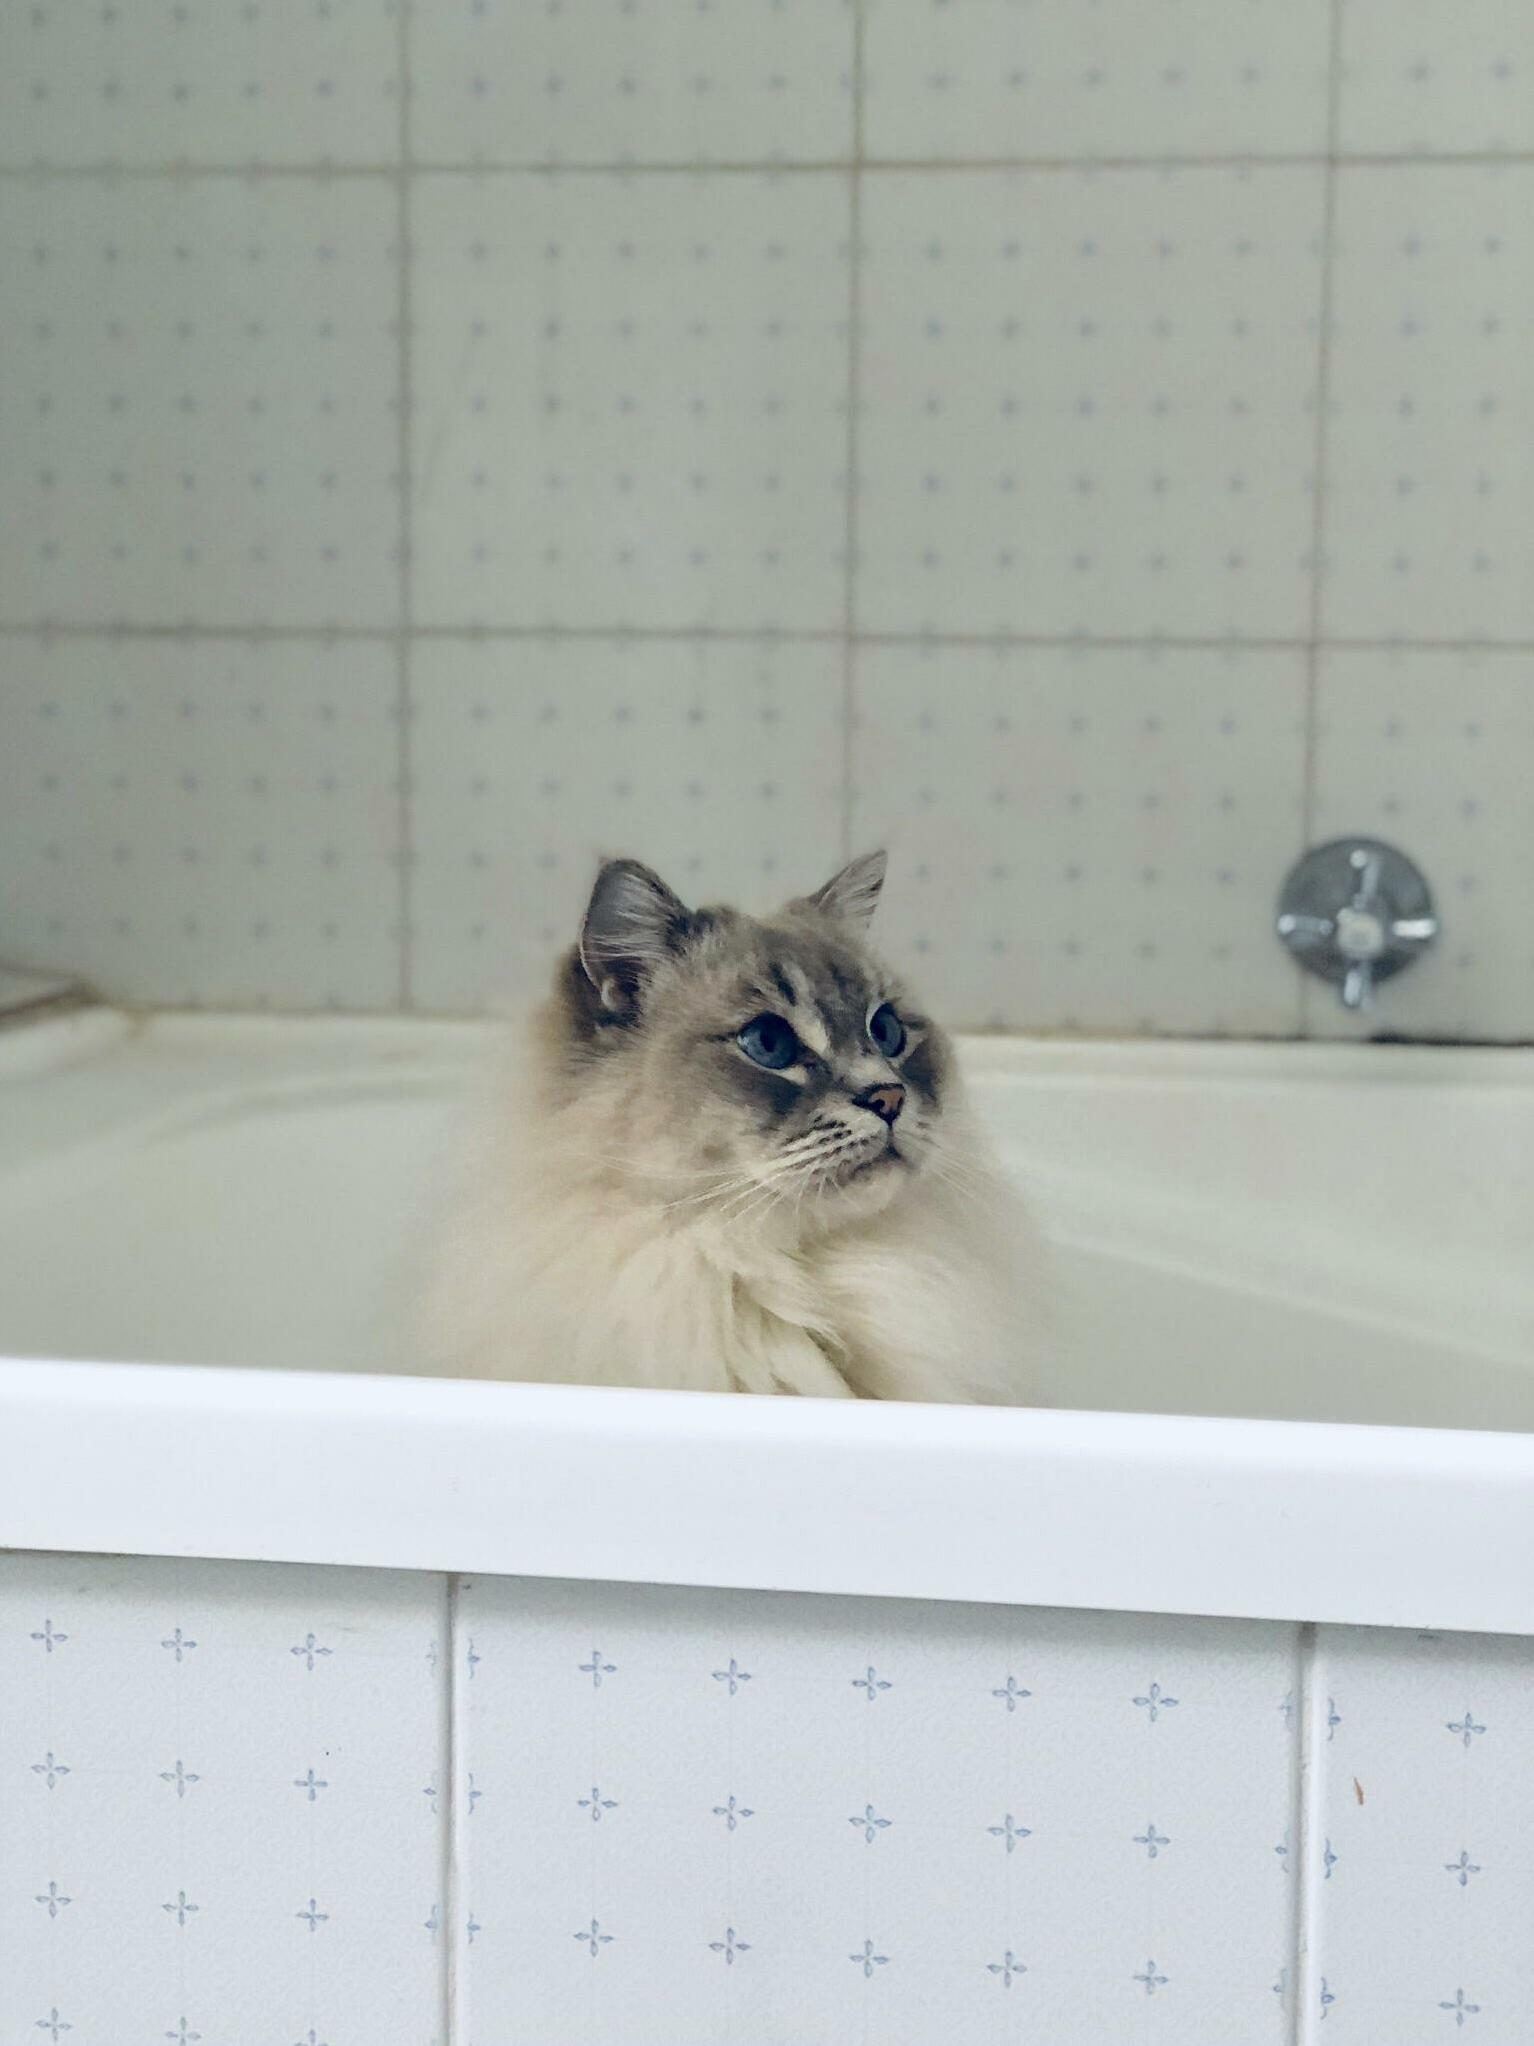 Moose likes to sit in the bath and look pretty